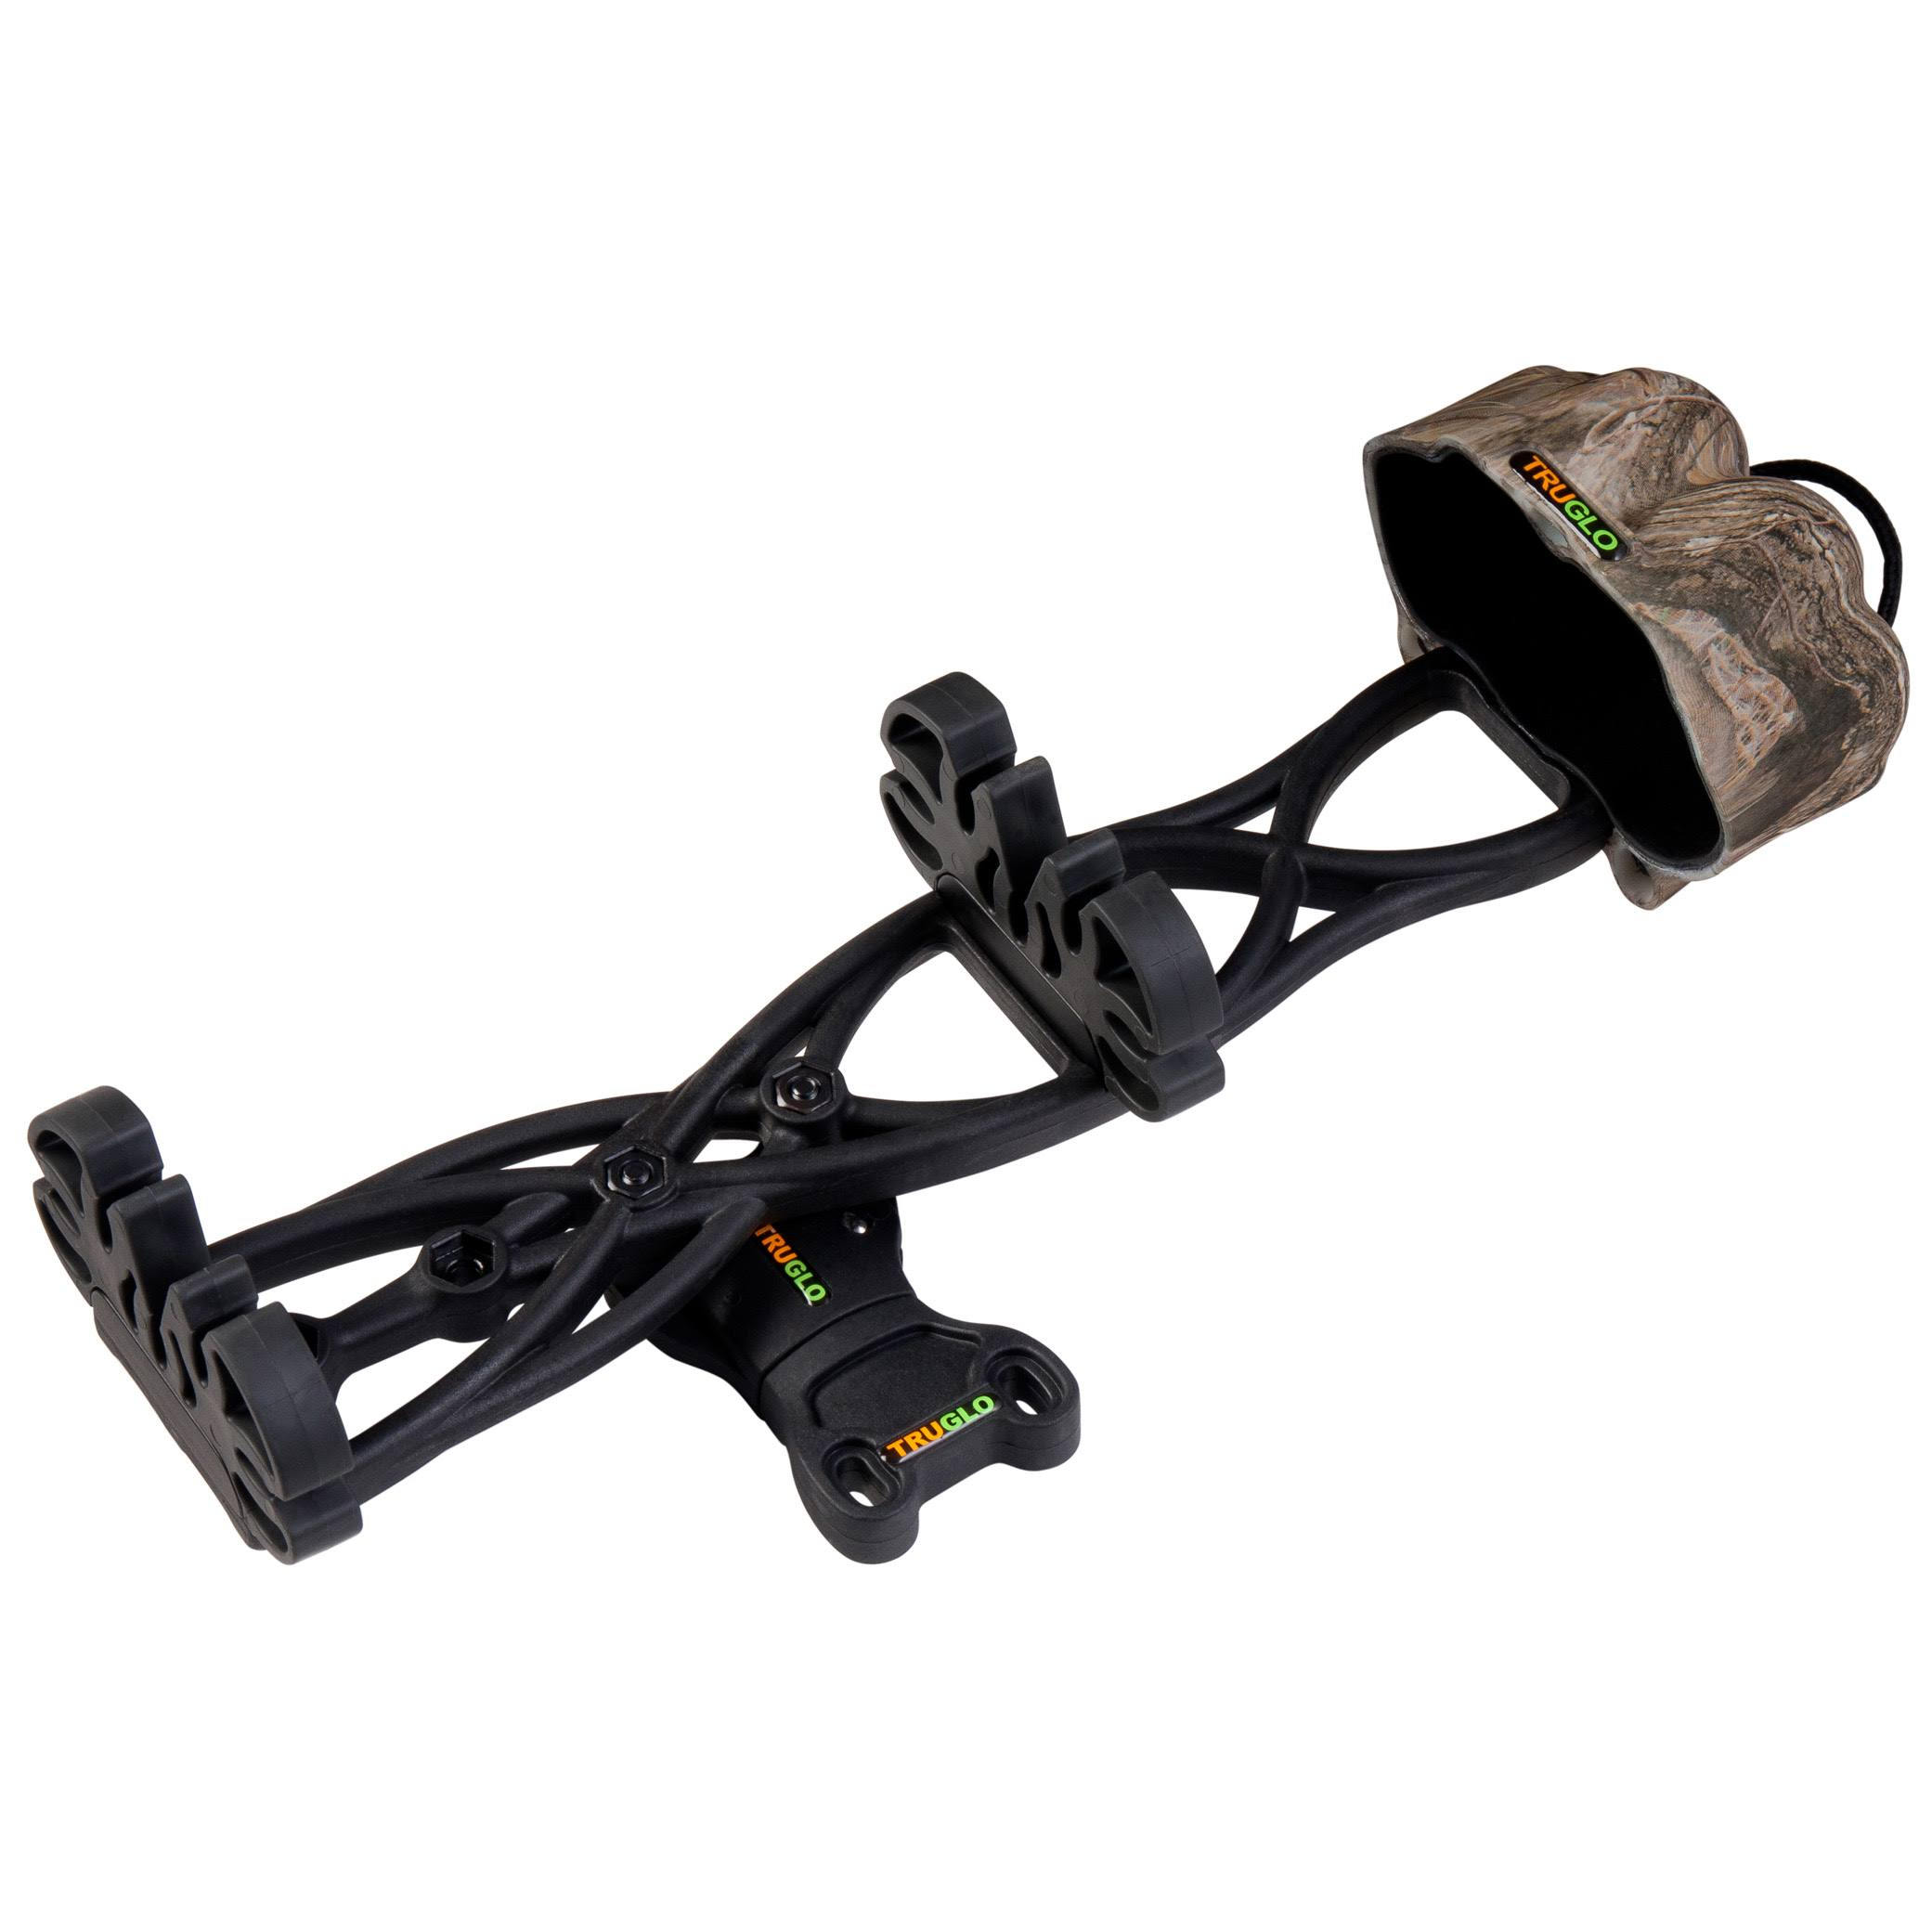 Truglo Carbon XS 5 Arrow Quiver Lost at Camo